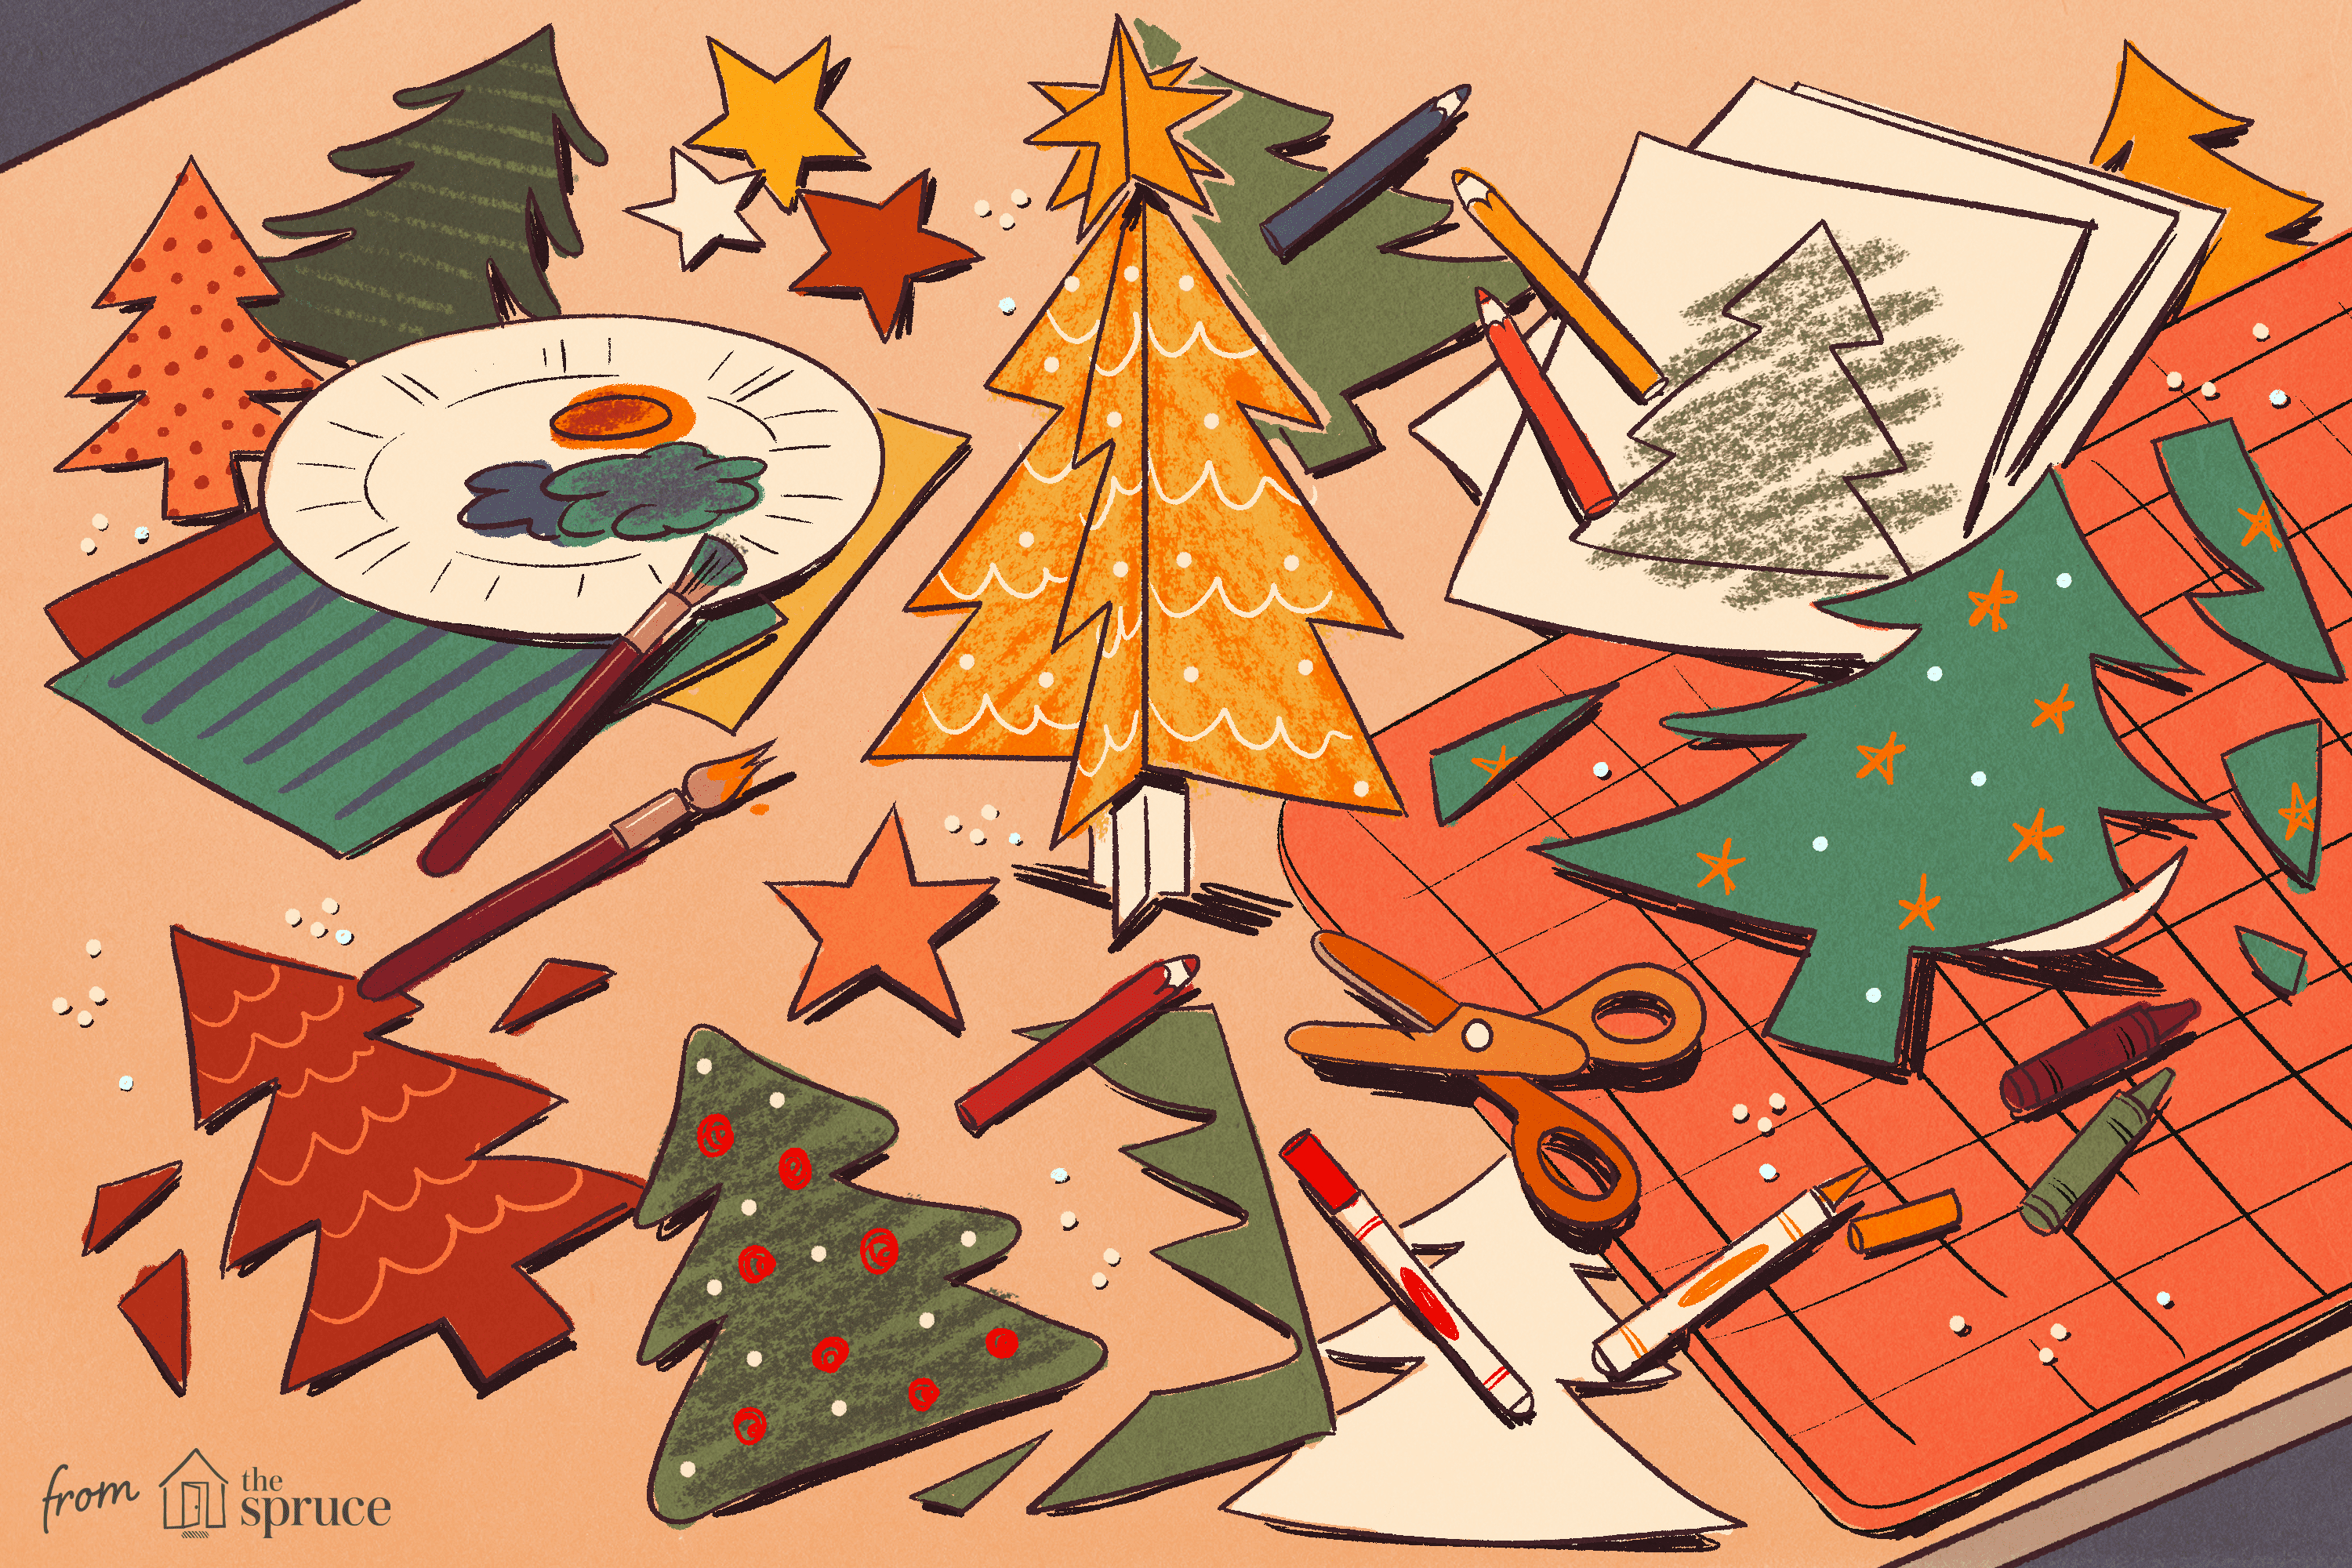 Christmas Tree Templates In All Shapes And Sizes - Free Printable Christmas Cutouts